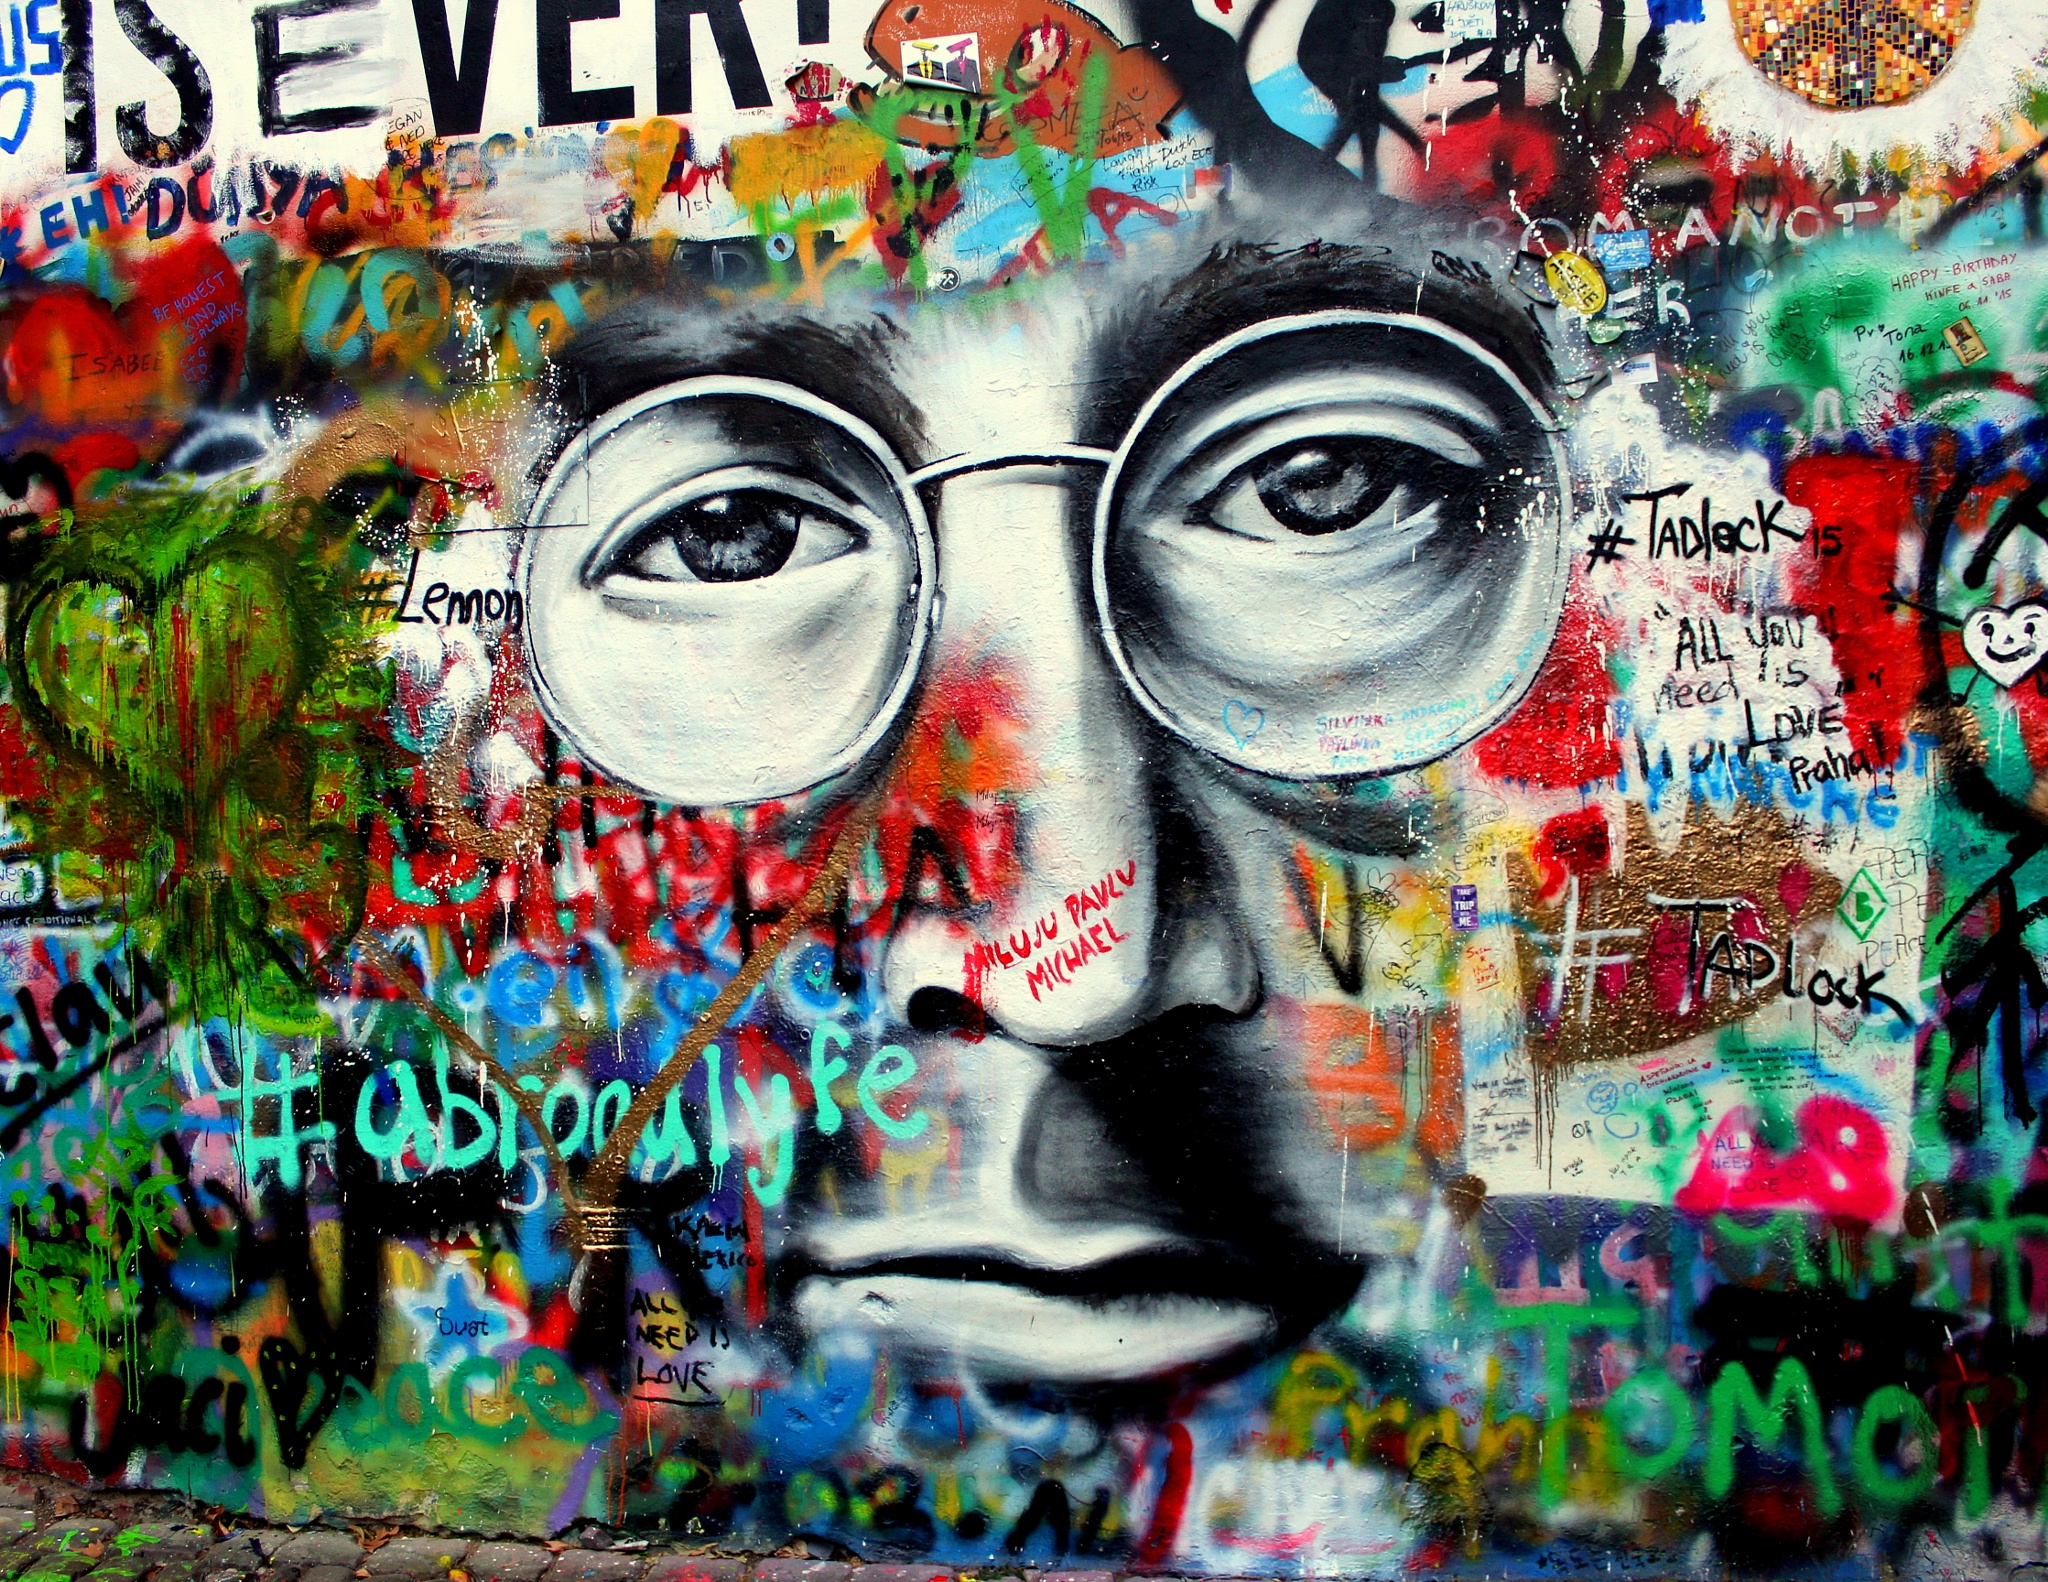 The John Lennon Wall by Isabel R.